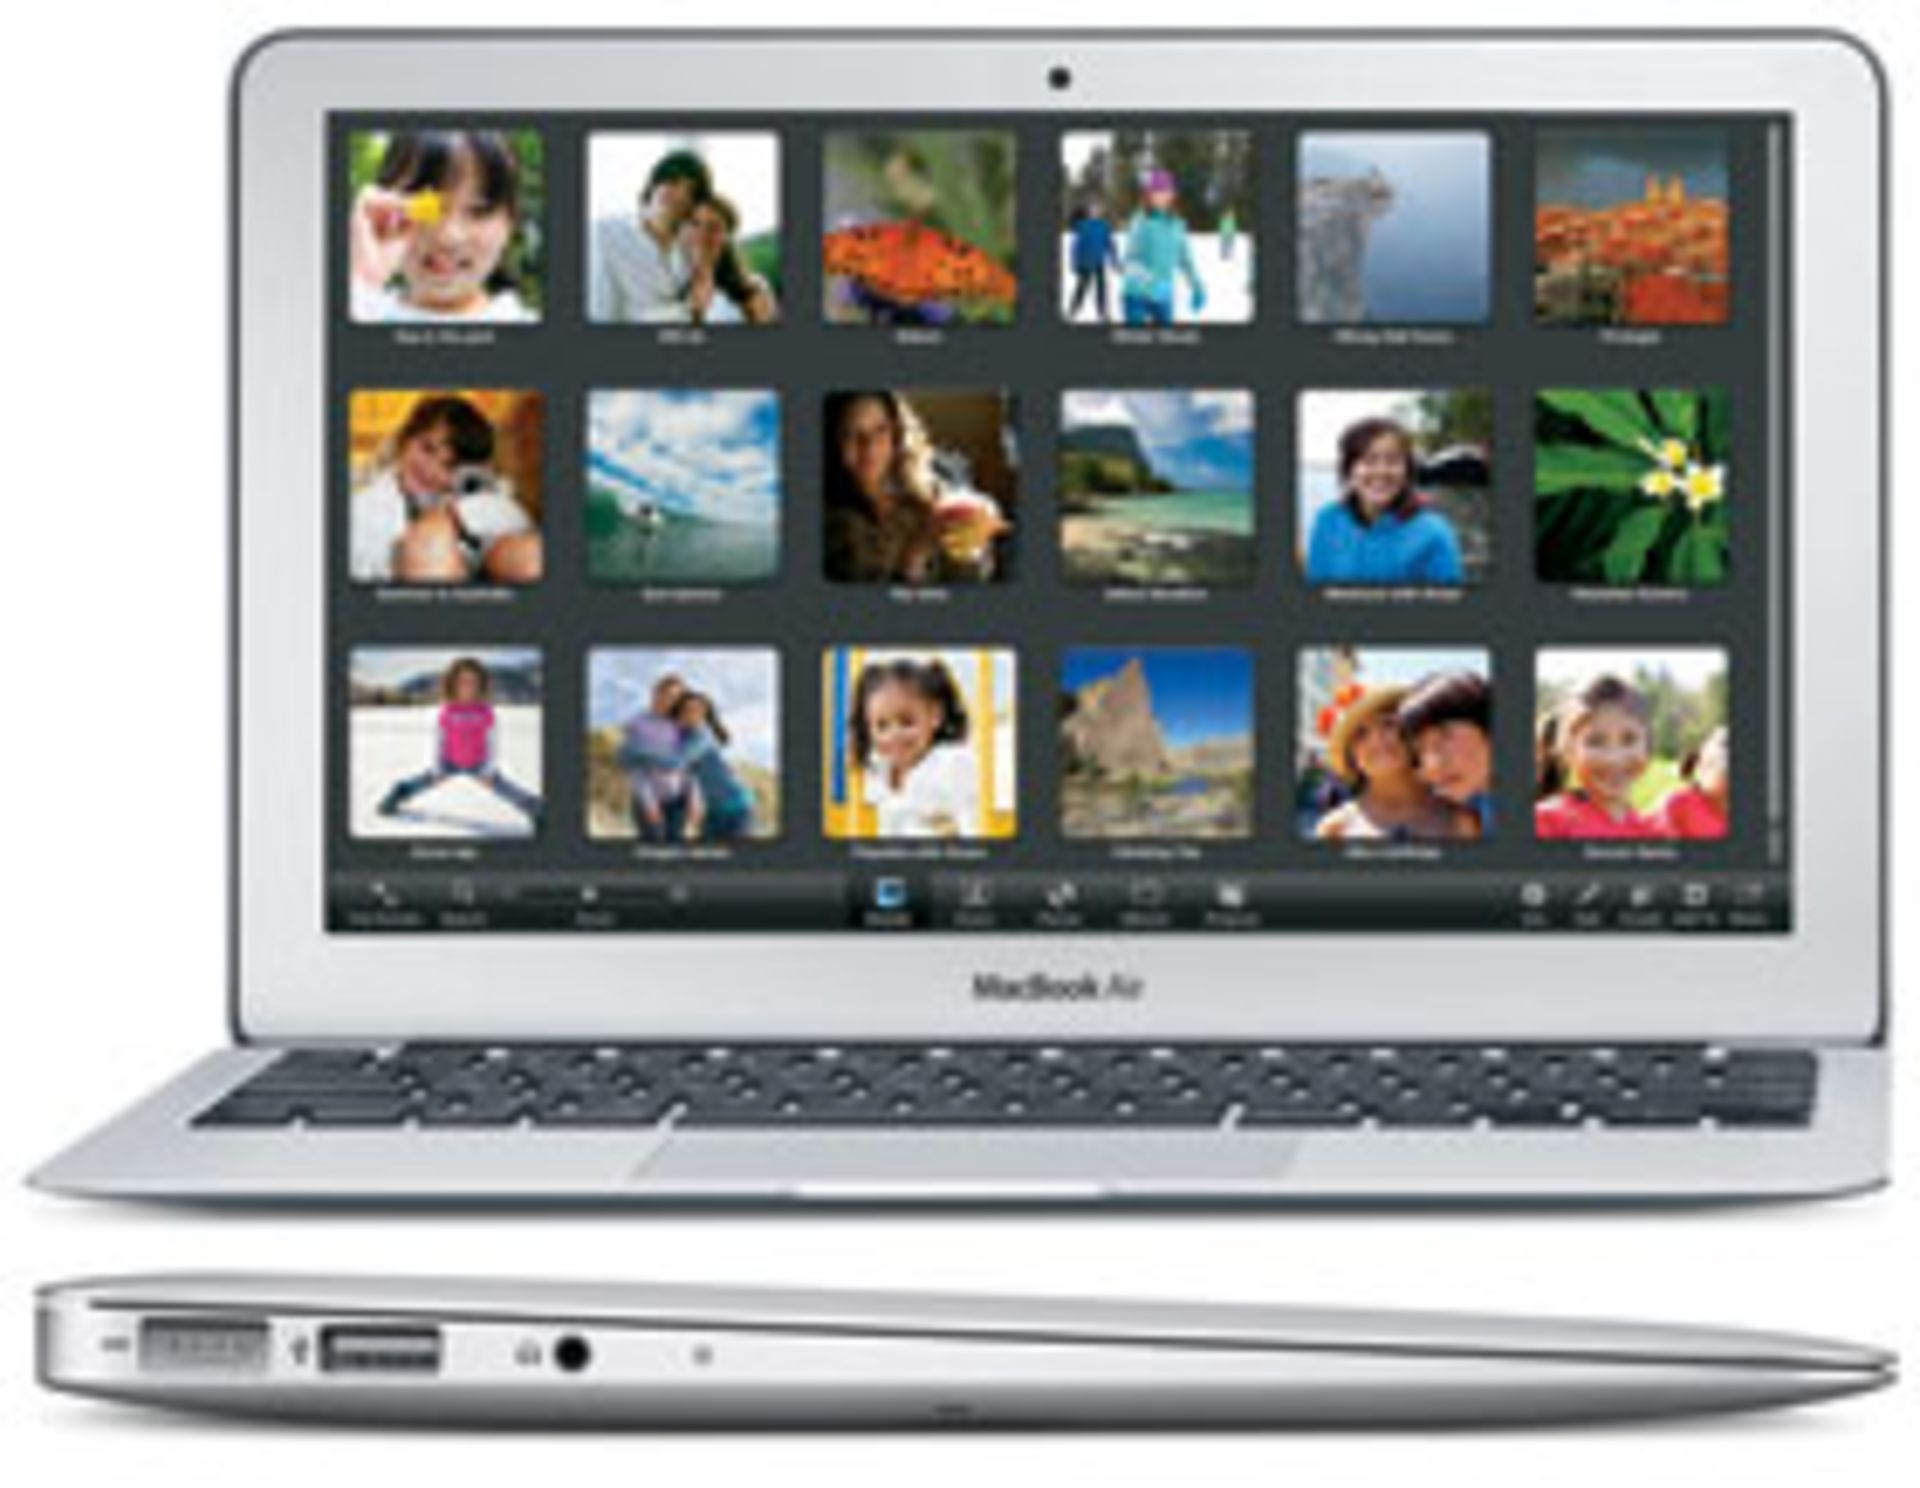 Lot 60024 - V Grade B Macbook Air 11.6 Inch Core 2 Duo - 64GB SSD - A1370 - Available Approx 7 Working Days